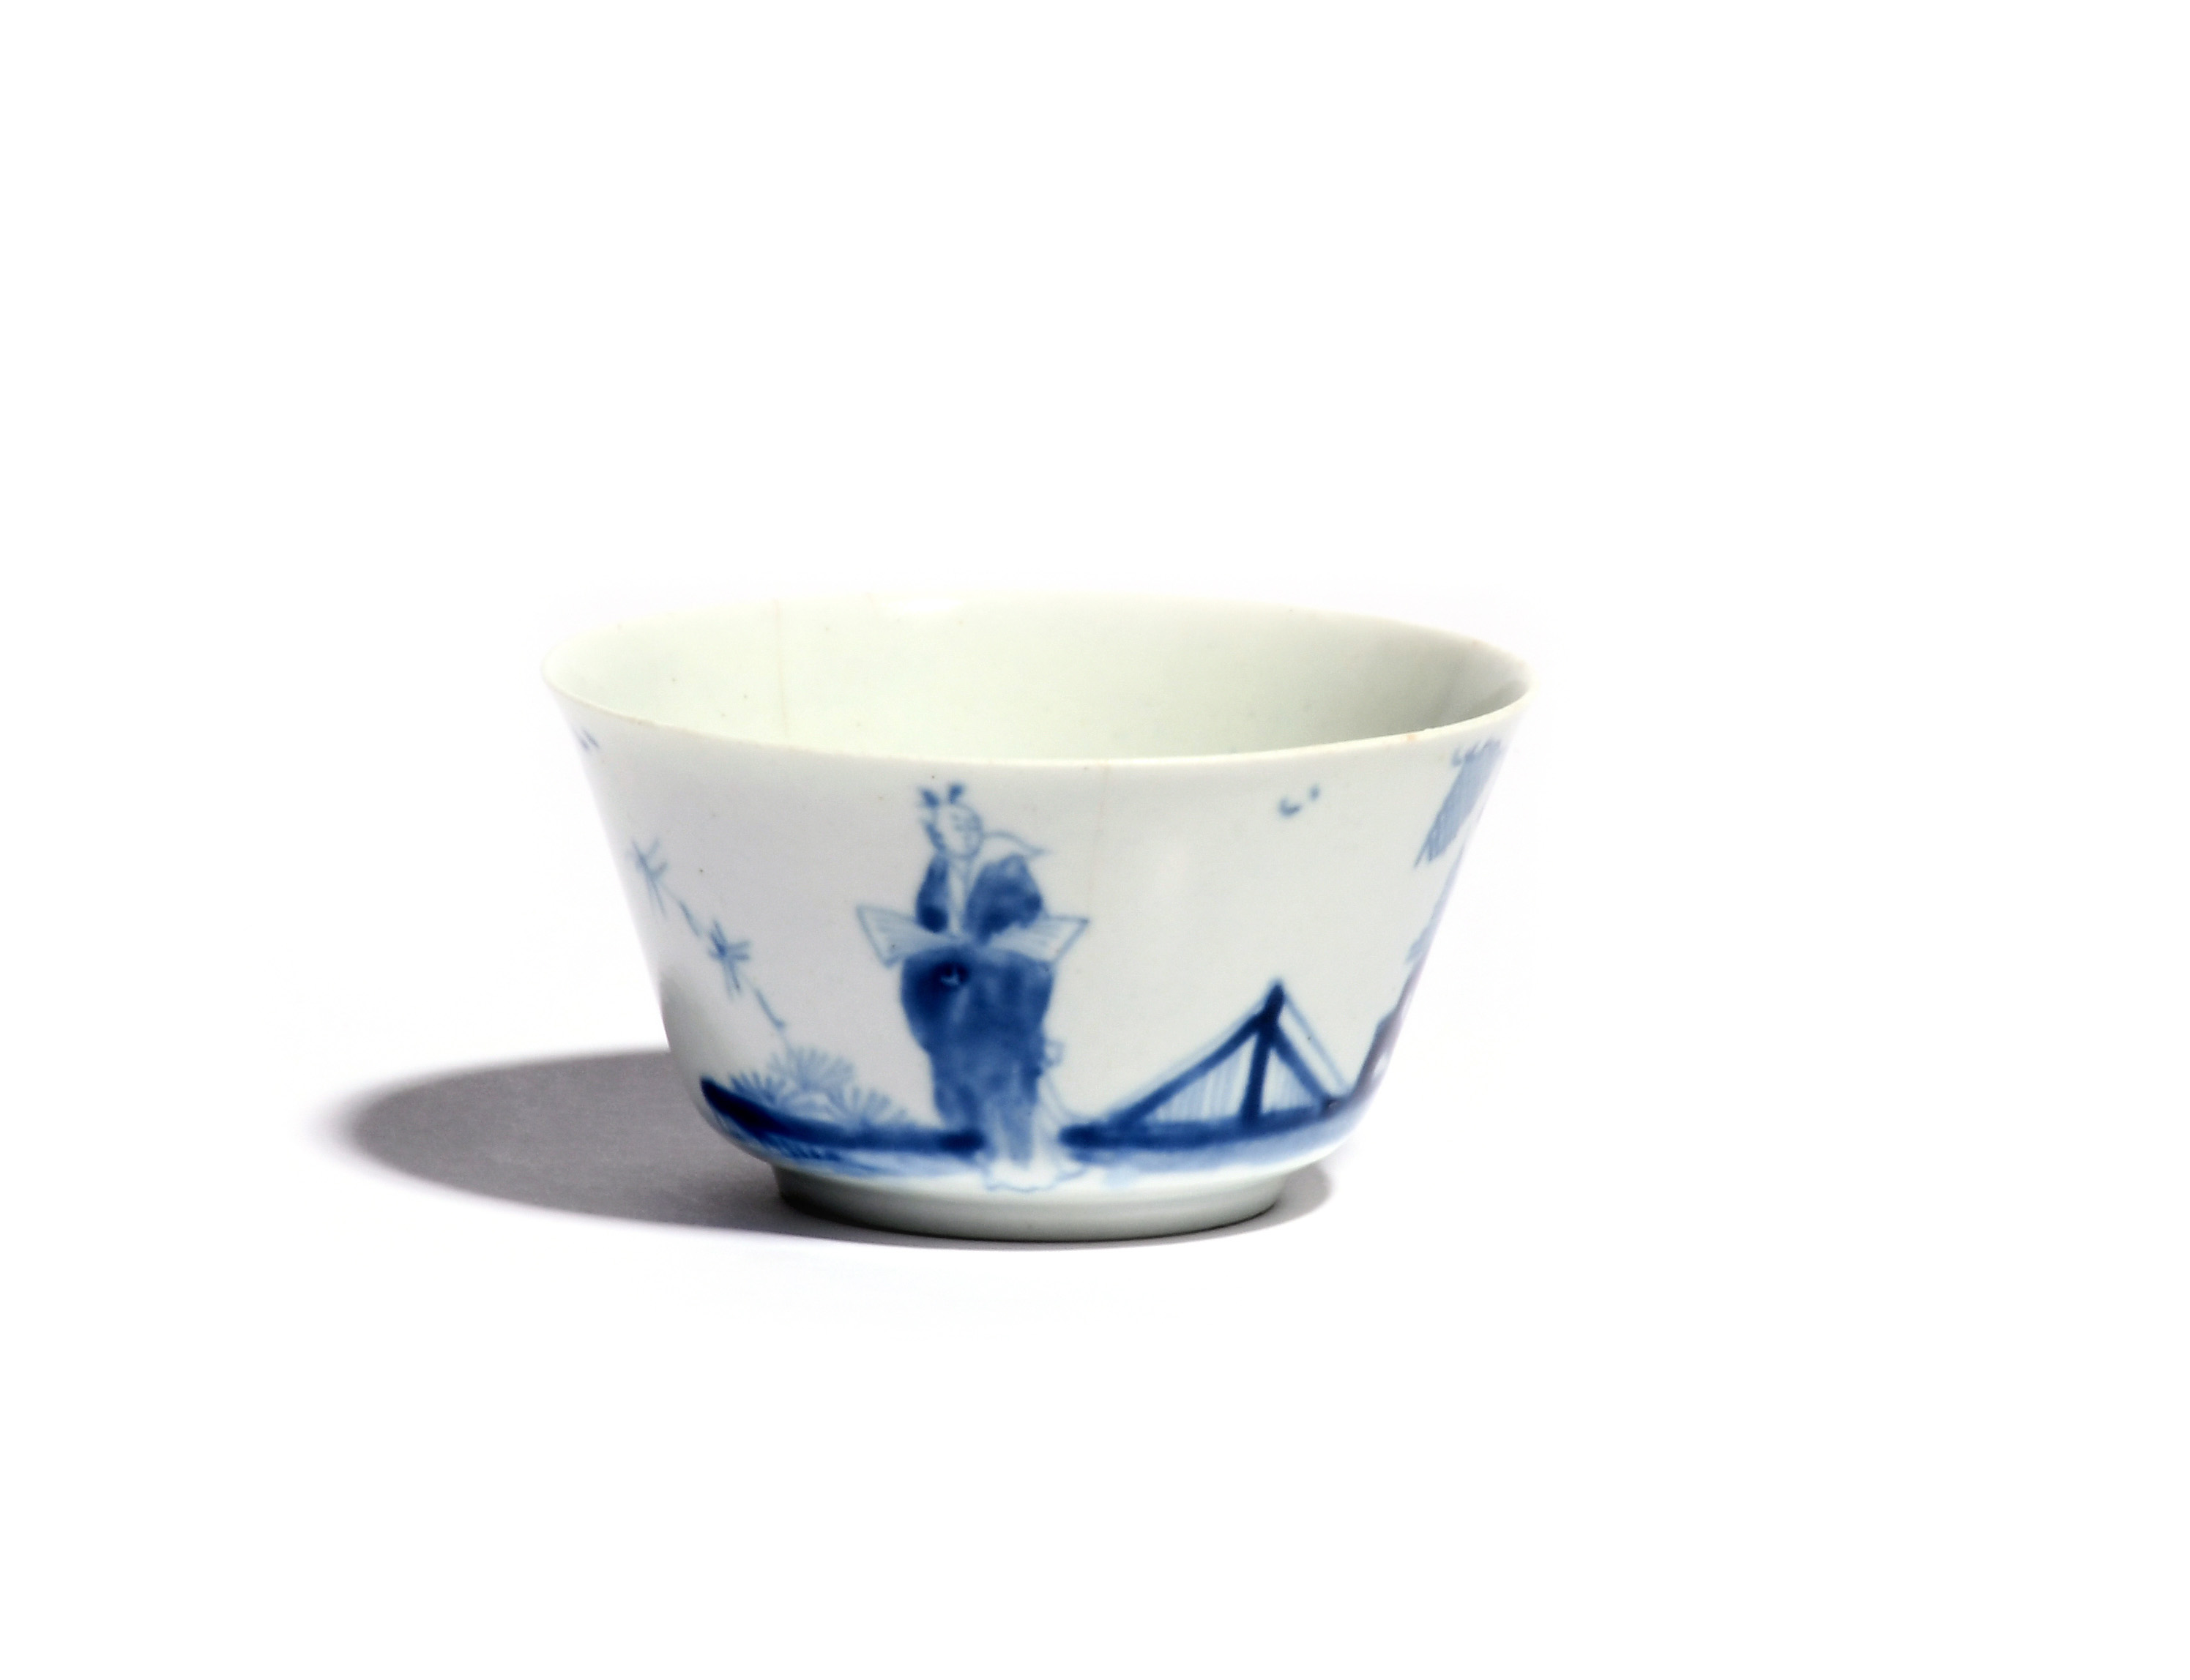 An early Worcester blue and white teabowl c.1753, the finely potted flared shape painted with the